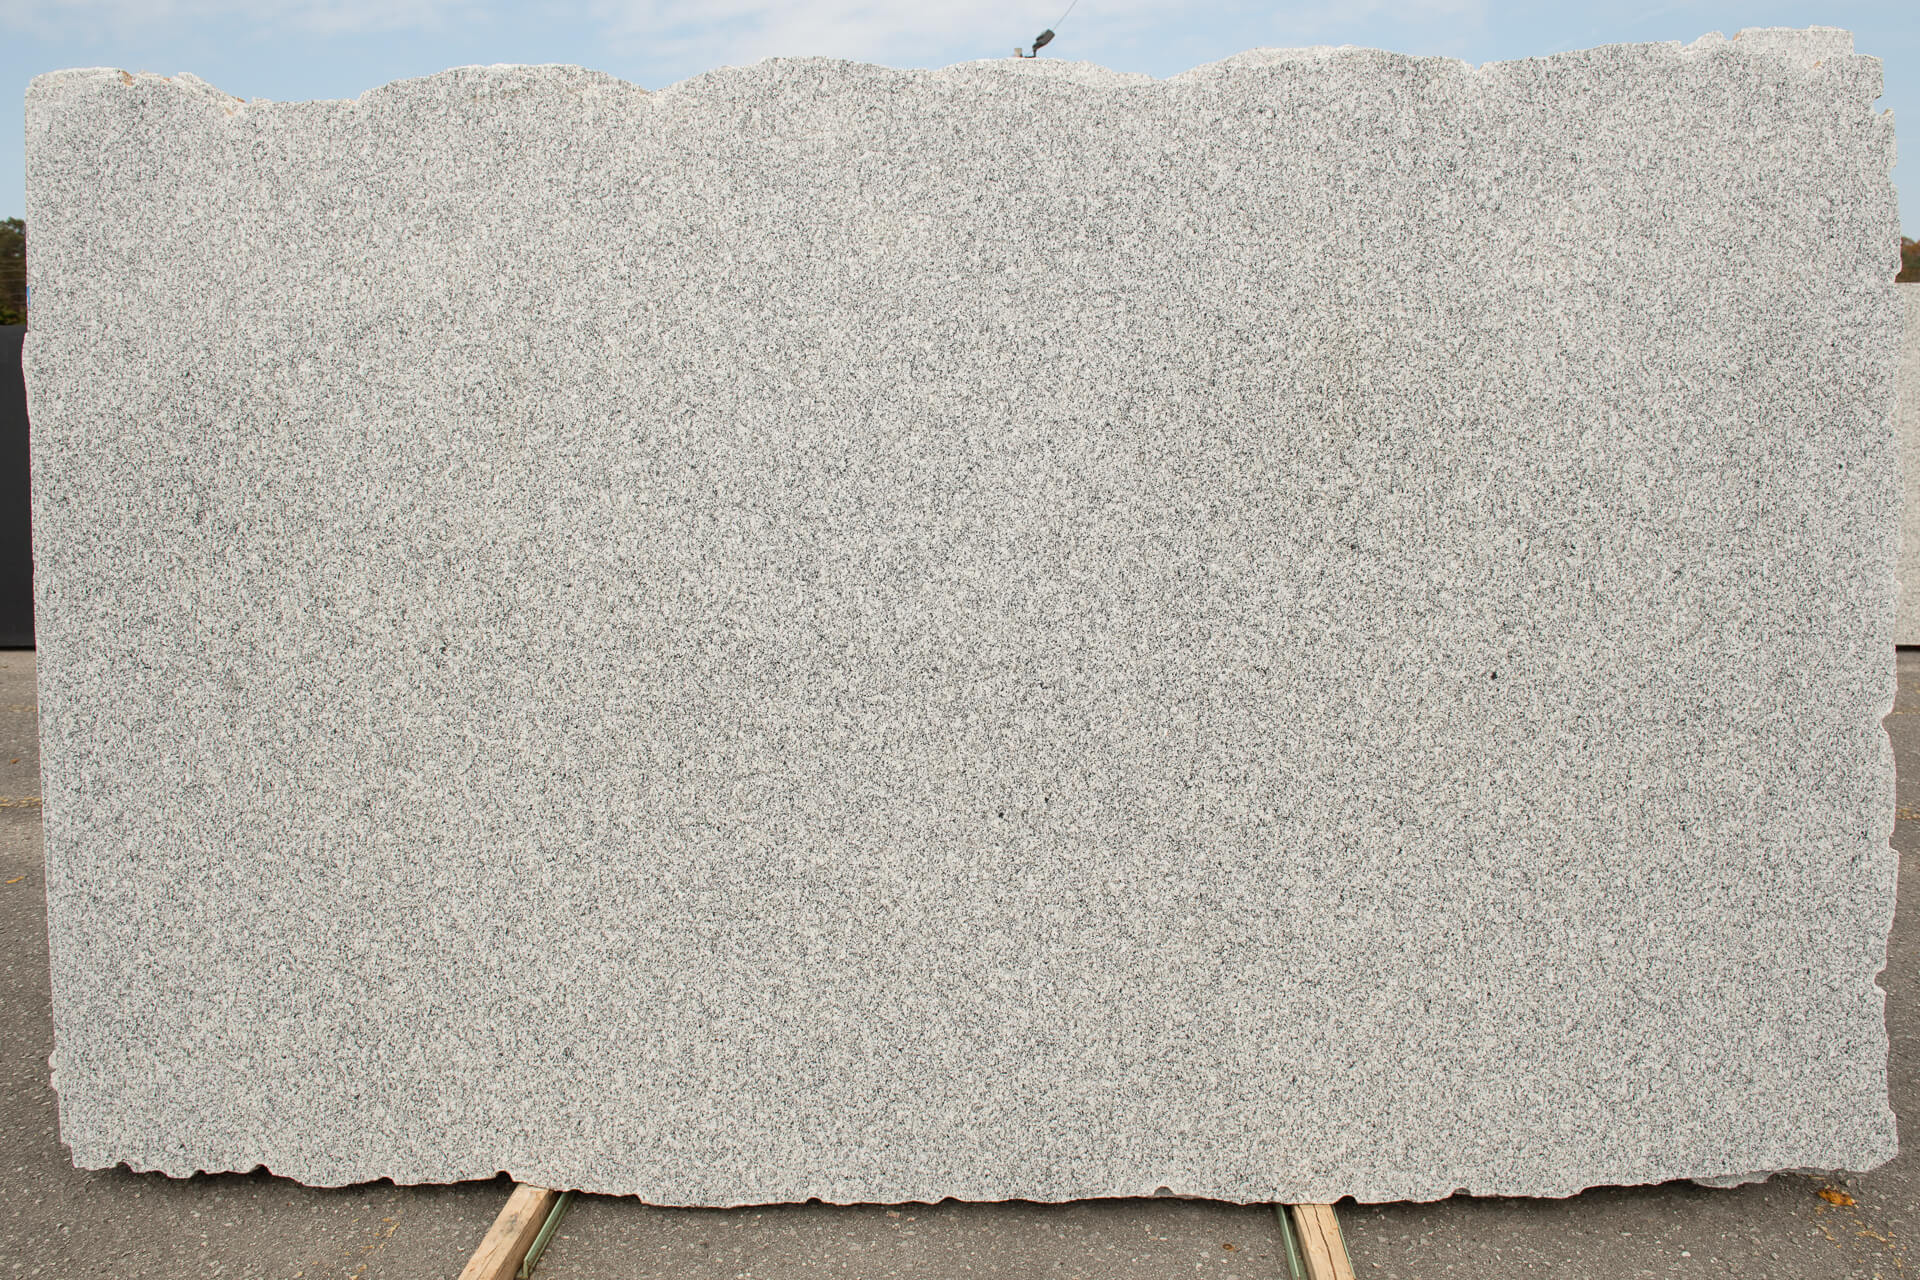 luna white 1 countertops for Crossville and Cookeville TN